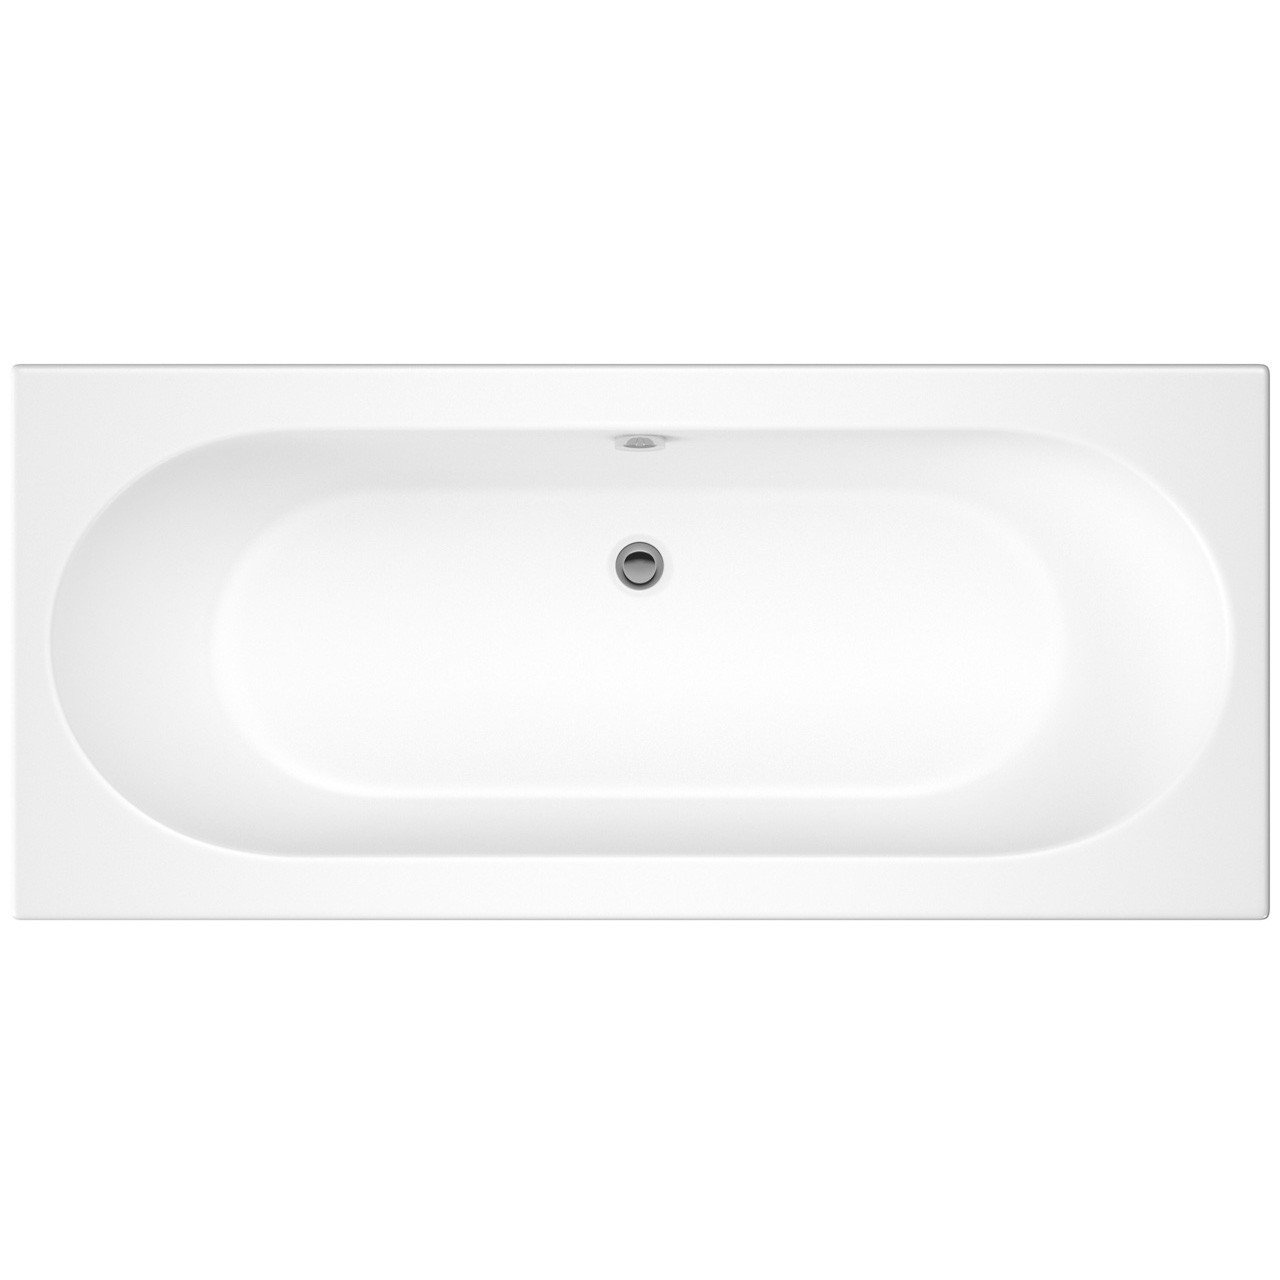 Nuie Otley 1700mm x 700mm Round Double Ended Bath - NBA509